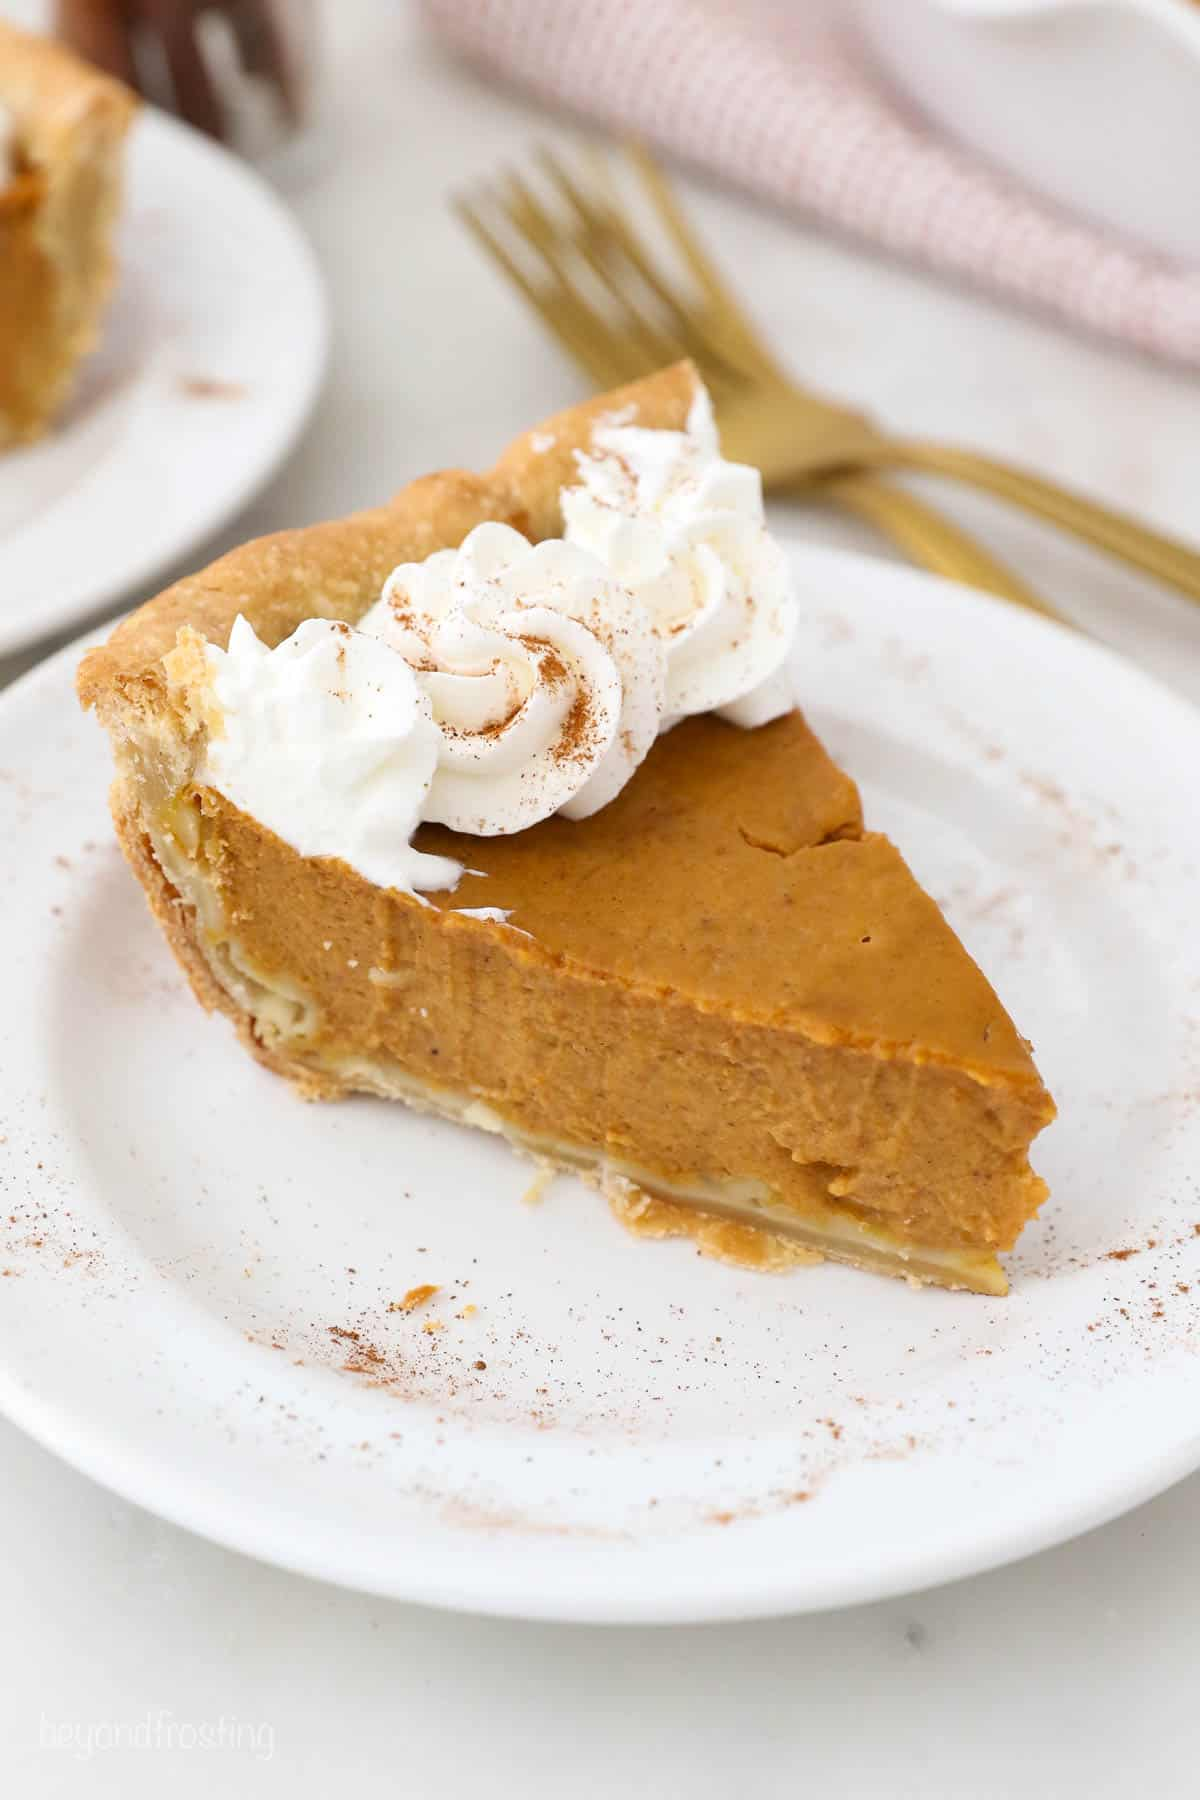 A slice of Pumpkin Pie with Homemade Whipped Cream.